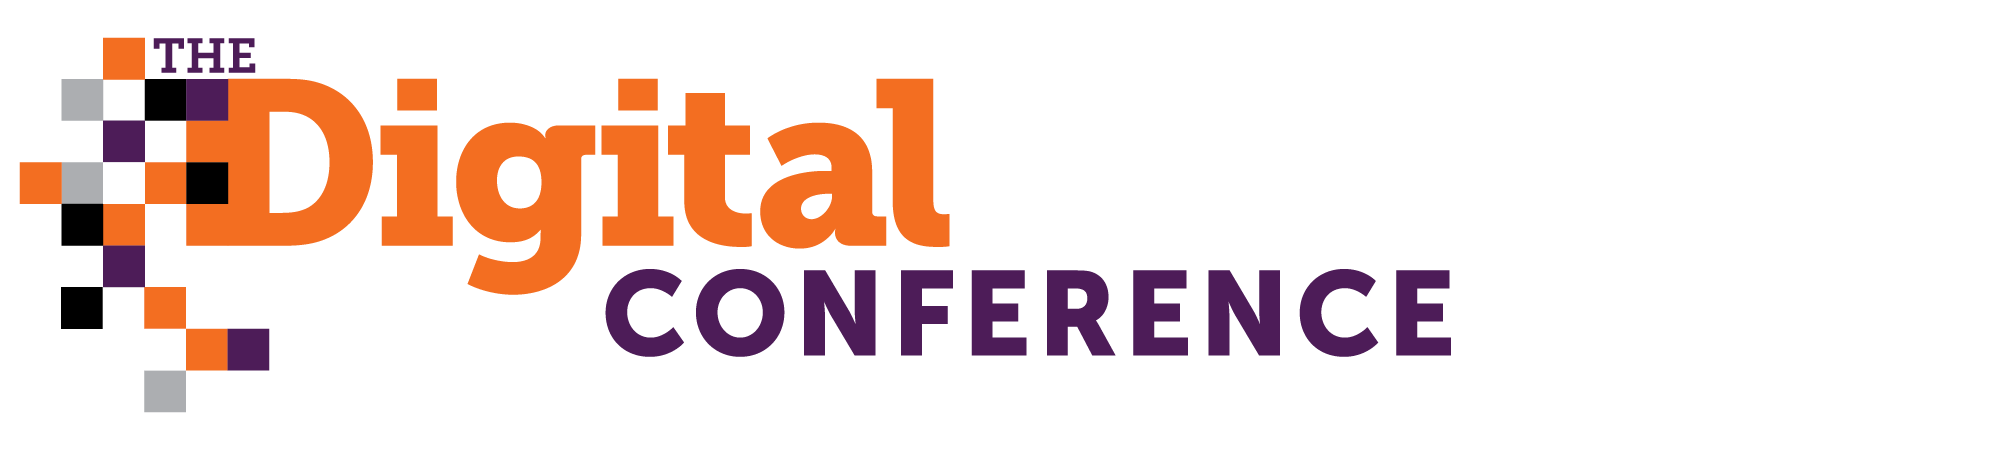 The Digital Workplace Conference Australia